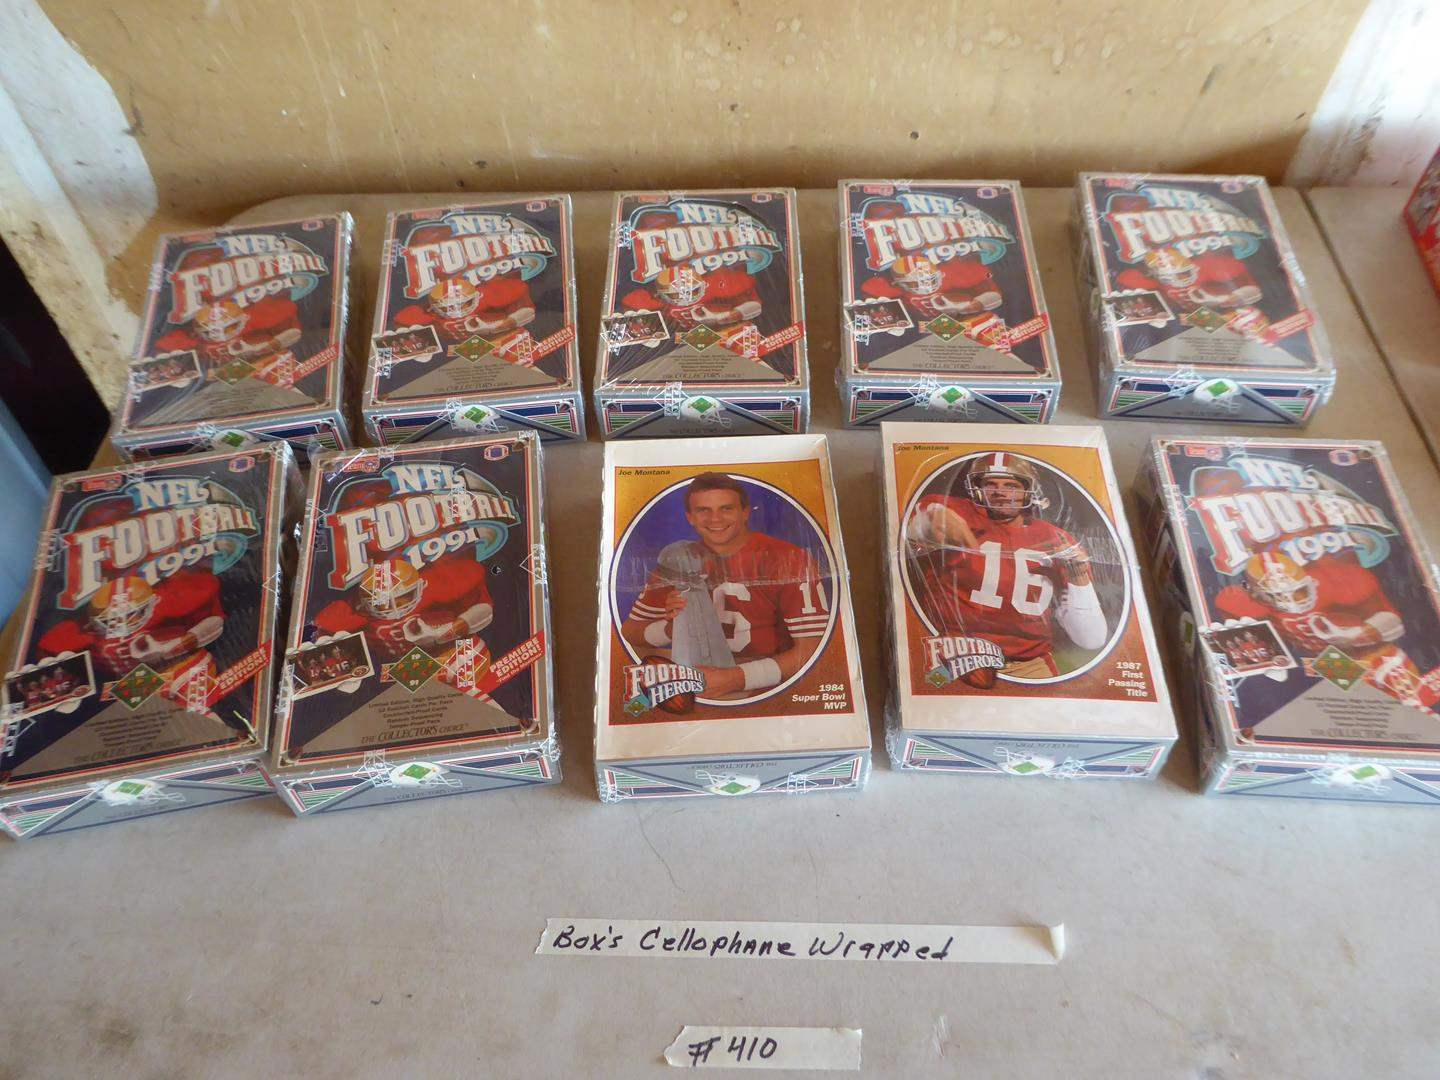 Lot # 410 - 10 Boxes NFL Football Cards (Boxes Cellophane Wrapped) (main image)